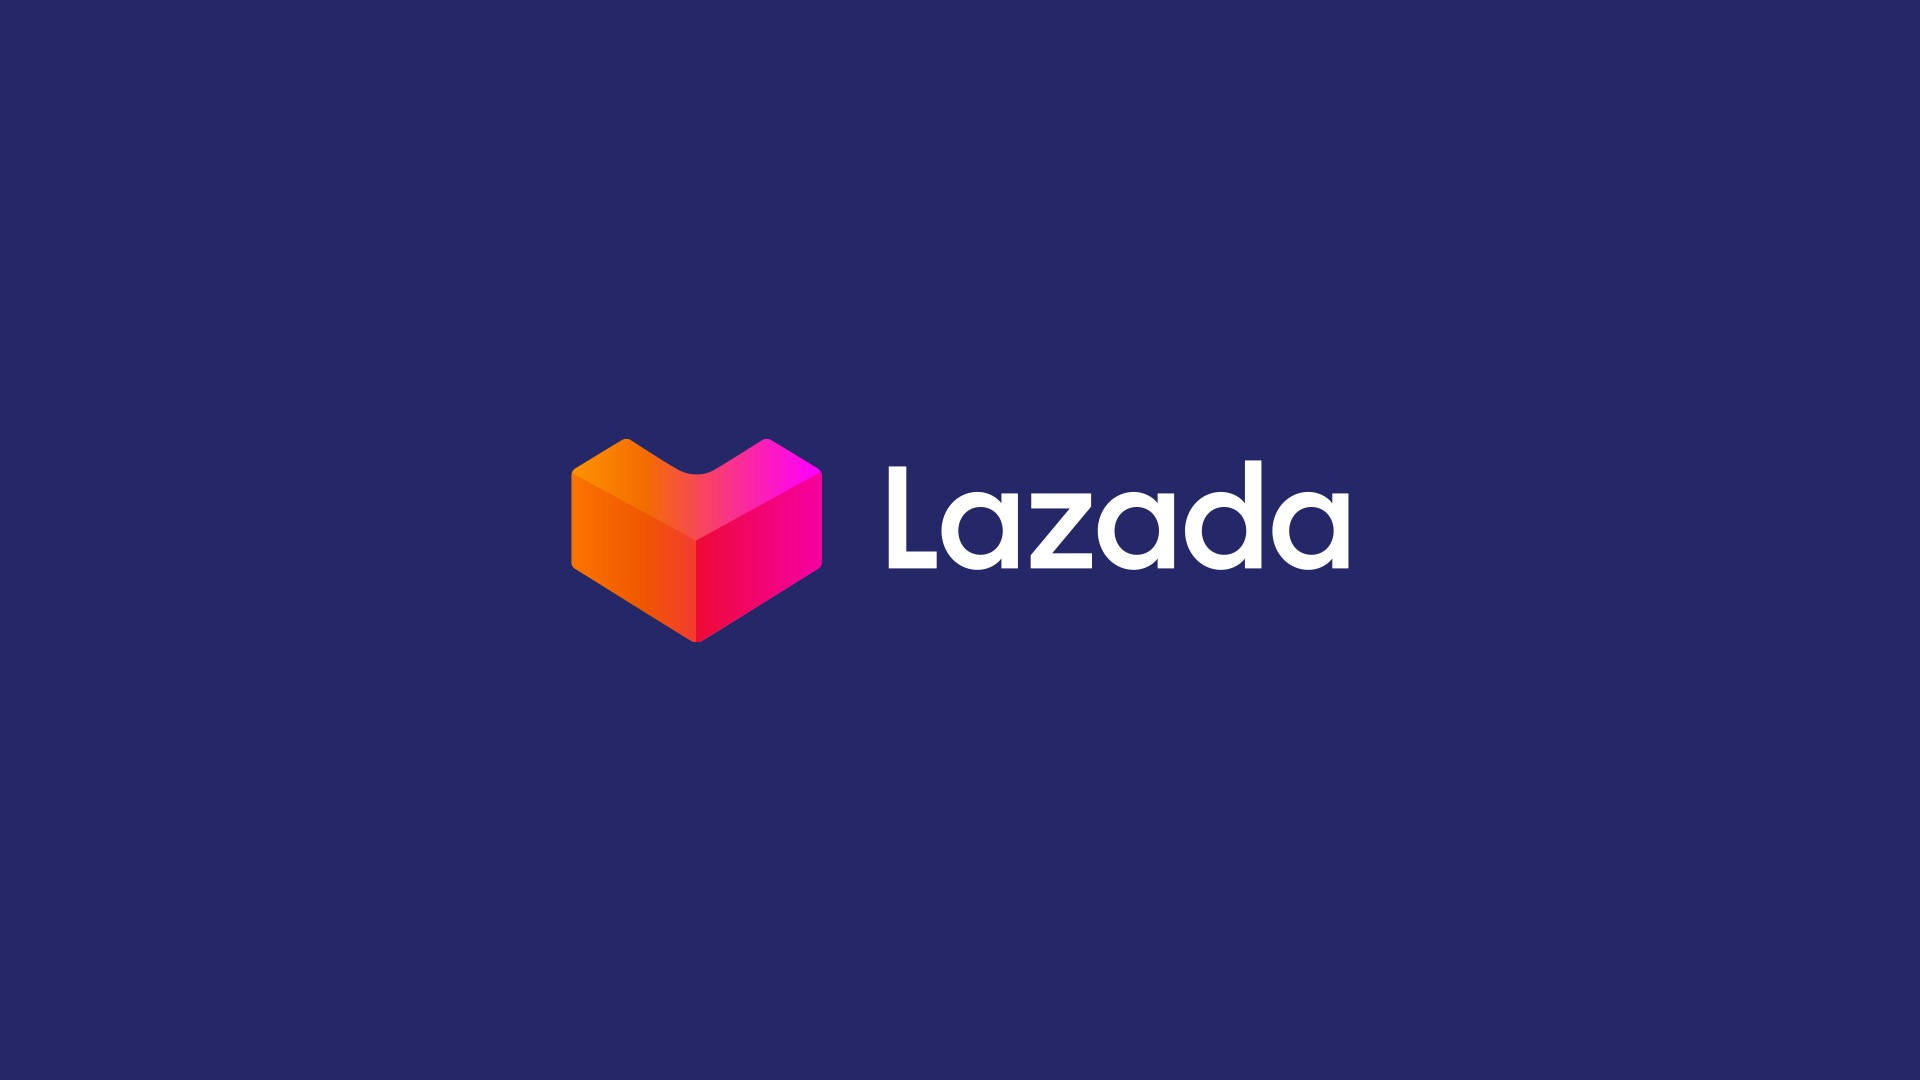 Lazada Marketing & Lazada Seller Promotion 101: 10 Things To Do & 1 Thing Not To Do